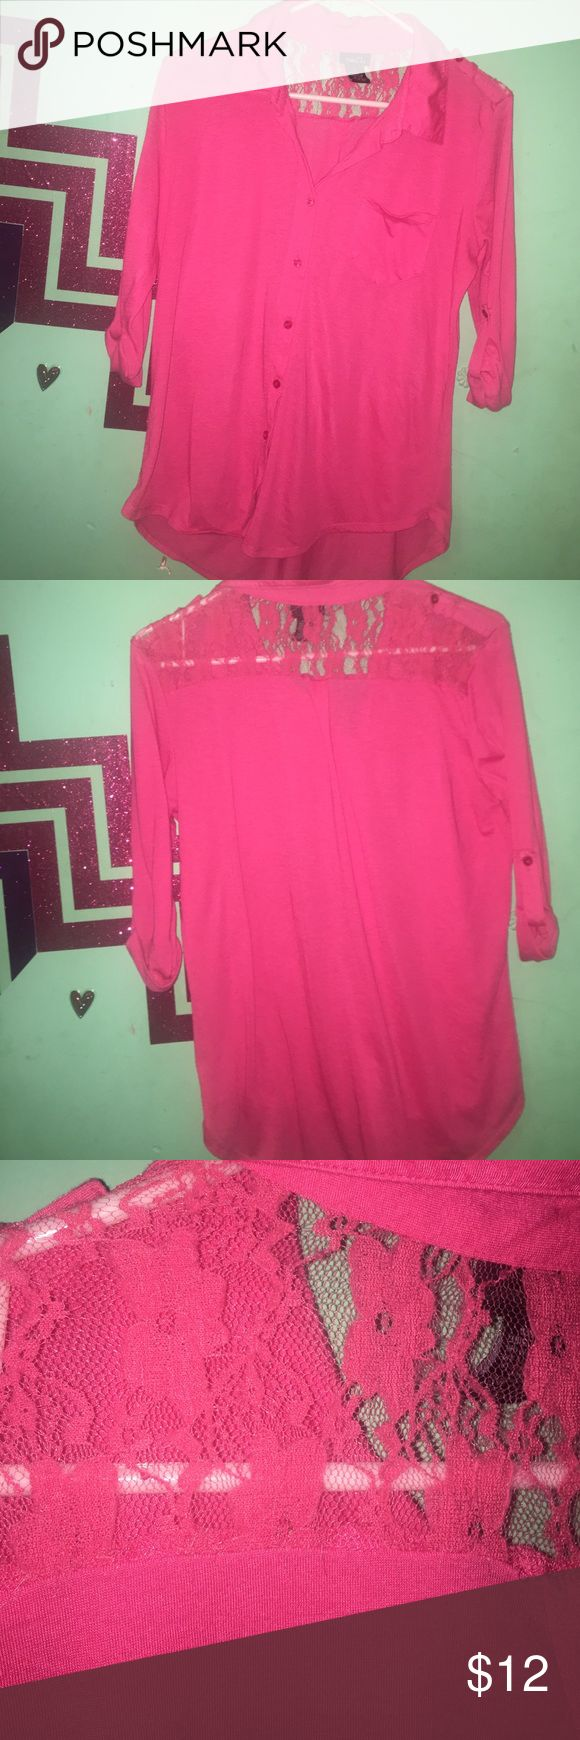 Rue 21 half sleeve shirt Hot pink half sleeve shirt. Button up. Good condition. 100% Polyester. Only see through on top shoulders. Rue 21 Tops Button Down Shirts